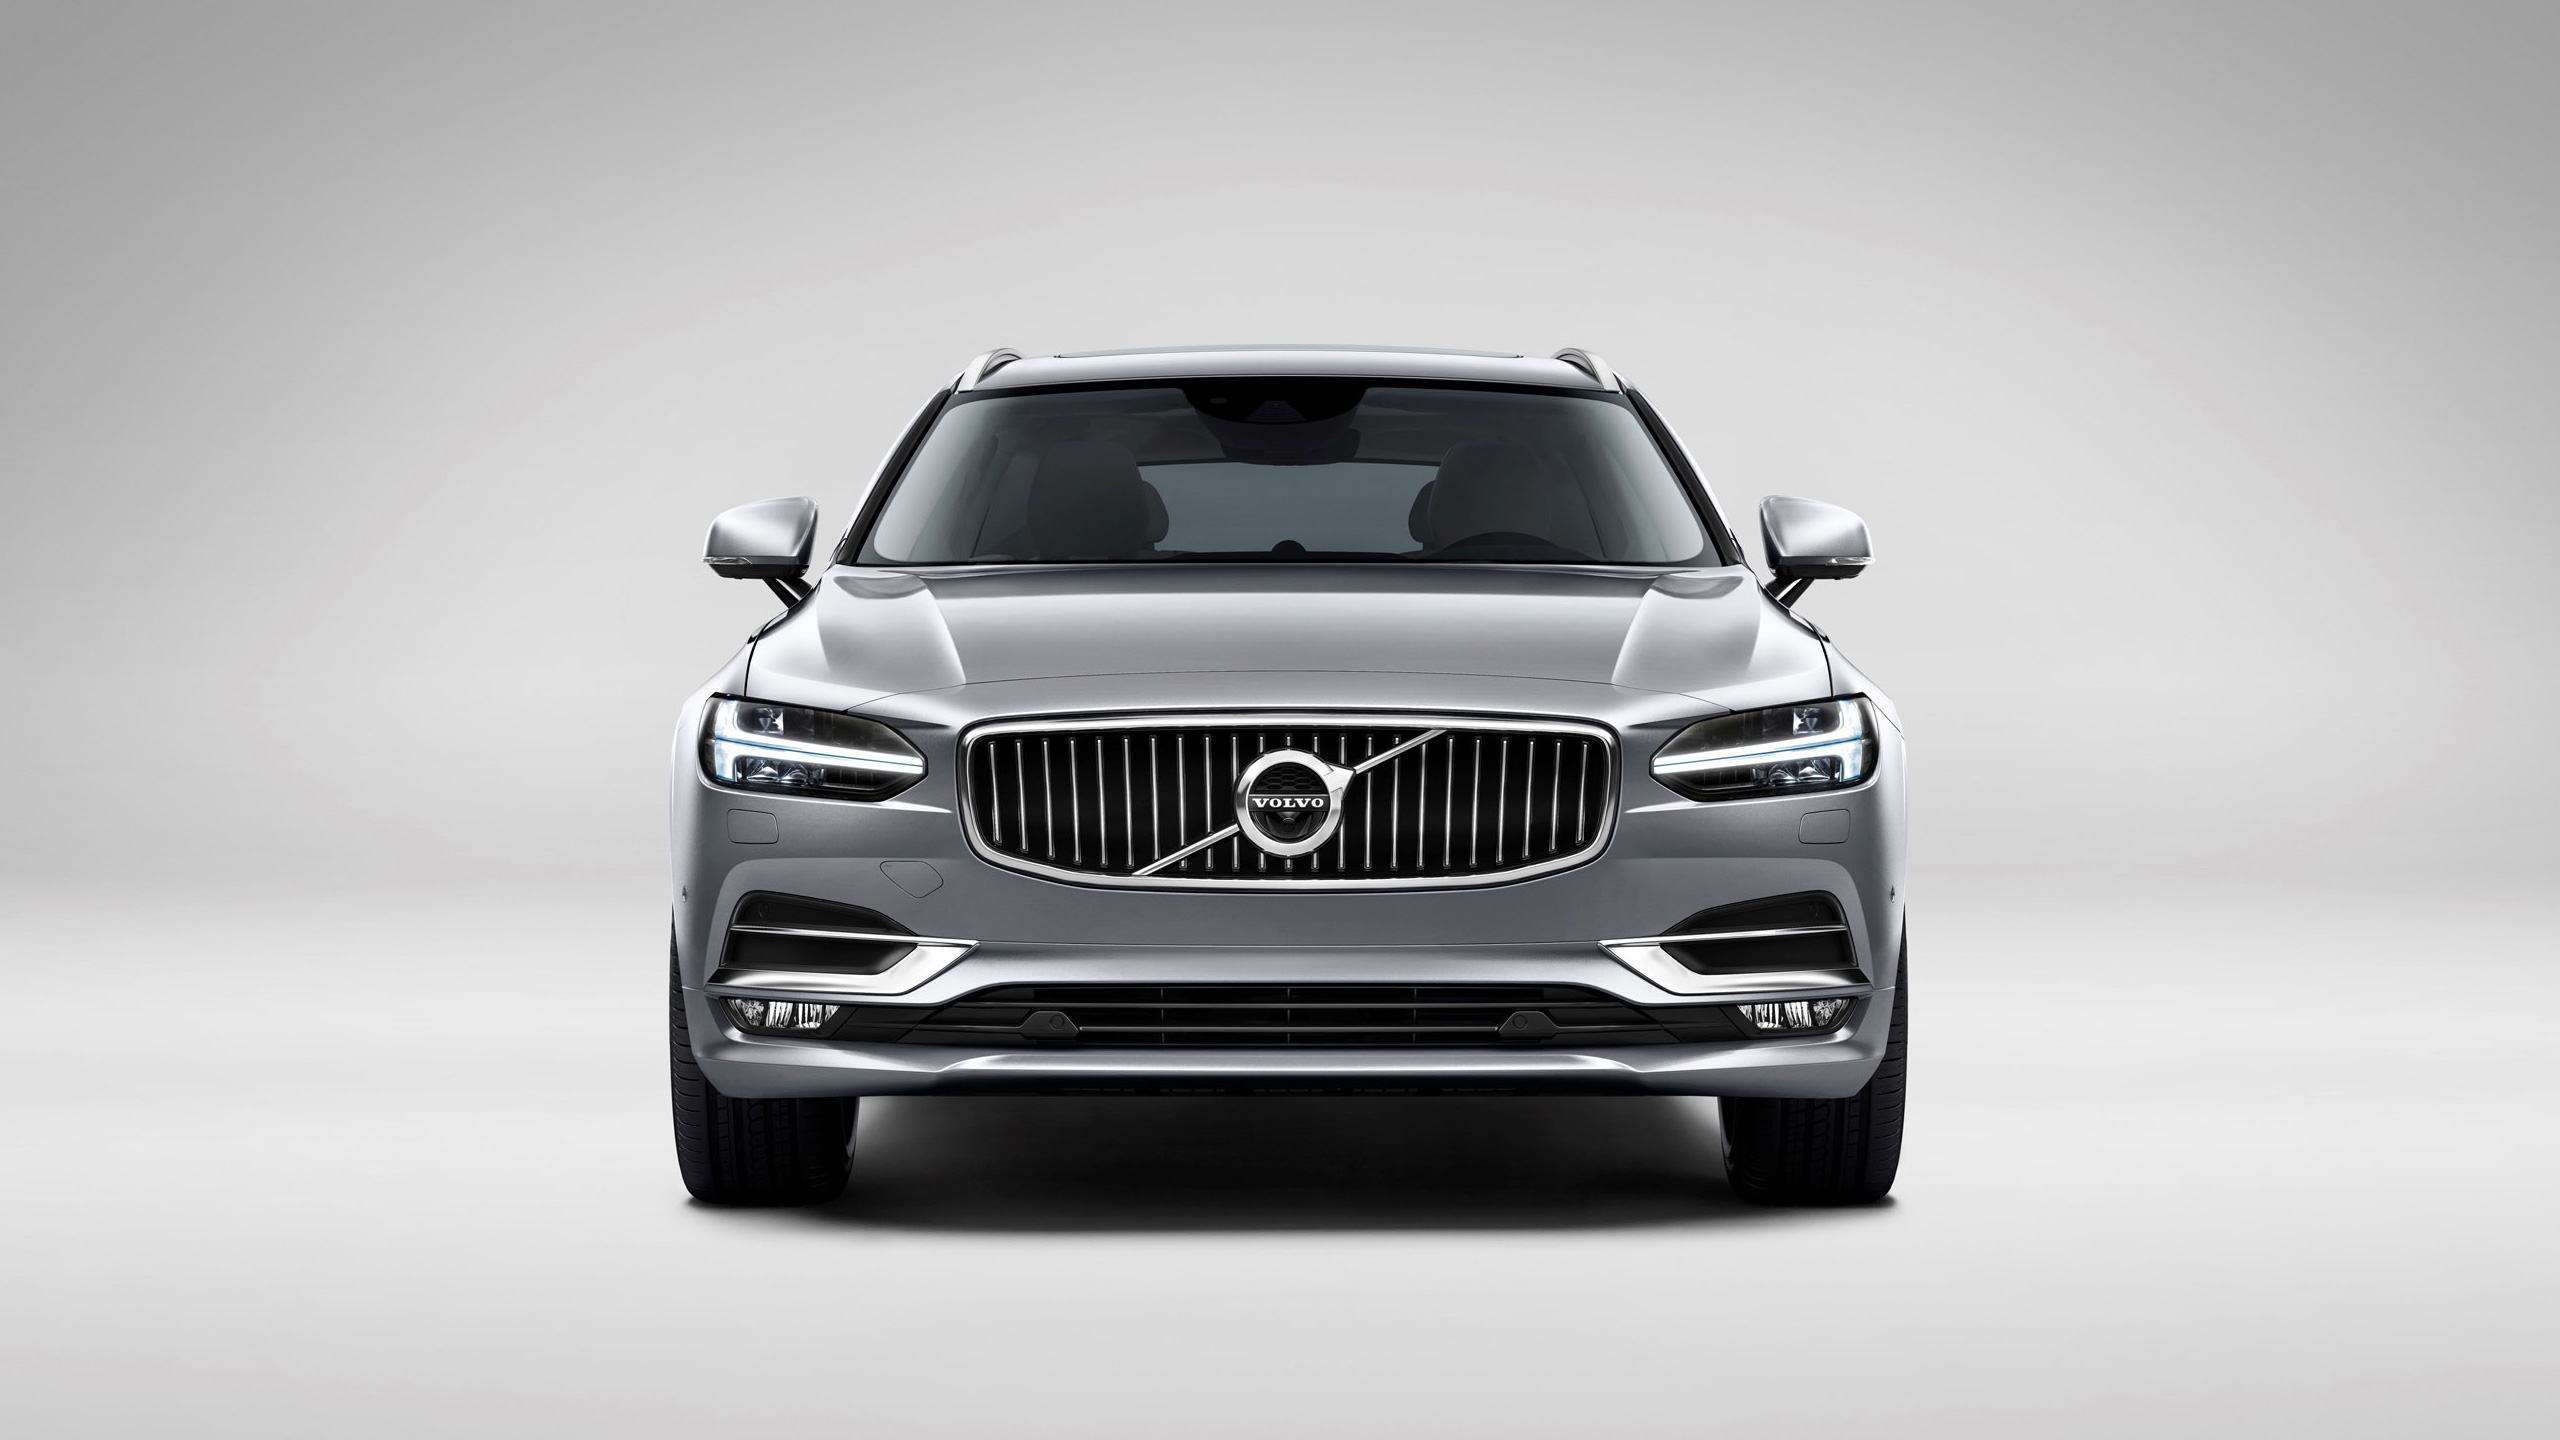 volvo v90 hd wallpapers cars march hdcarwallpapers backgrounds tags